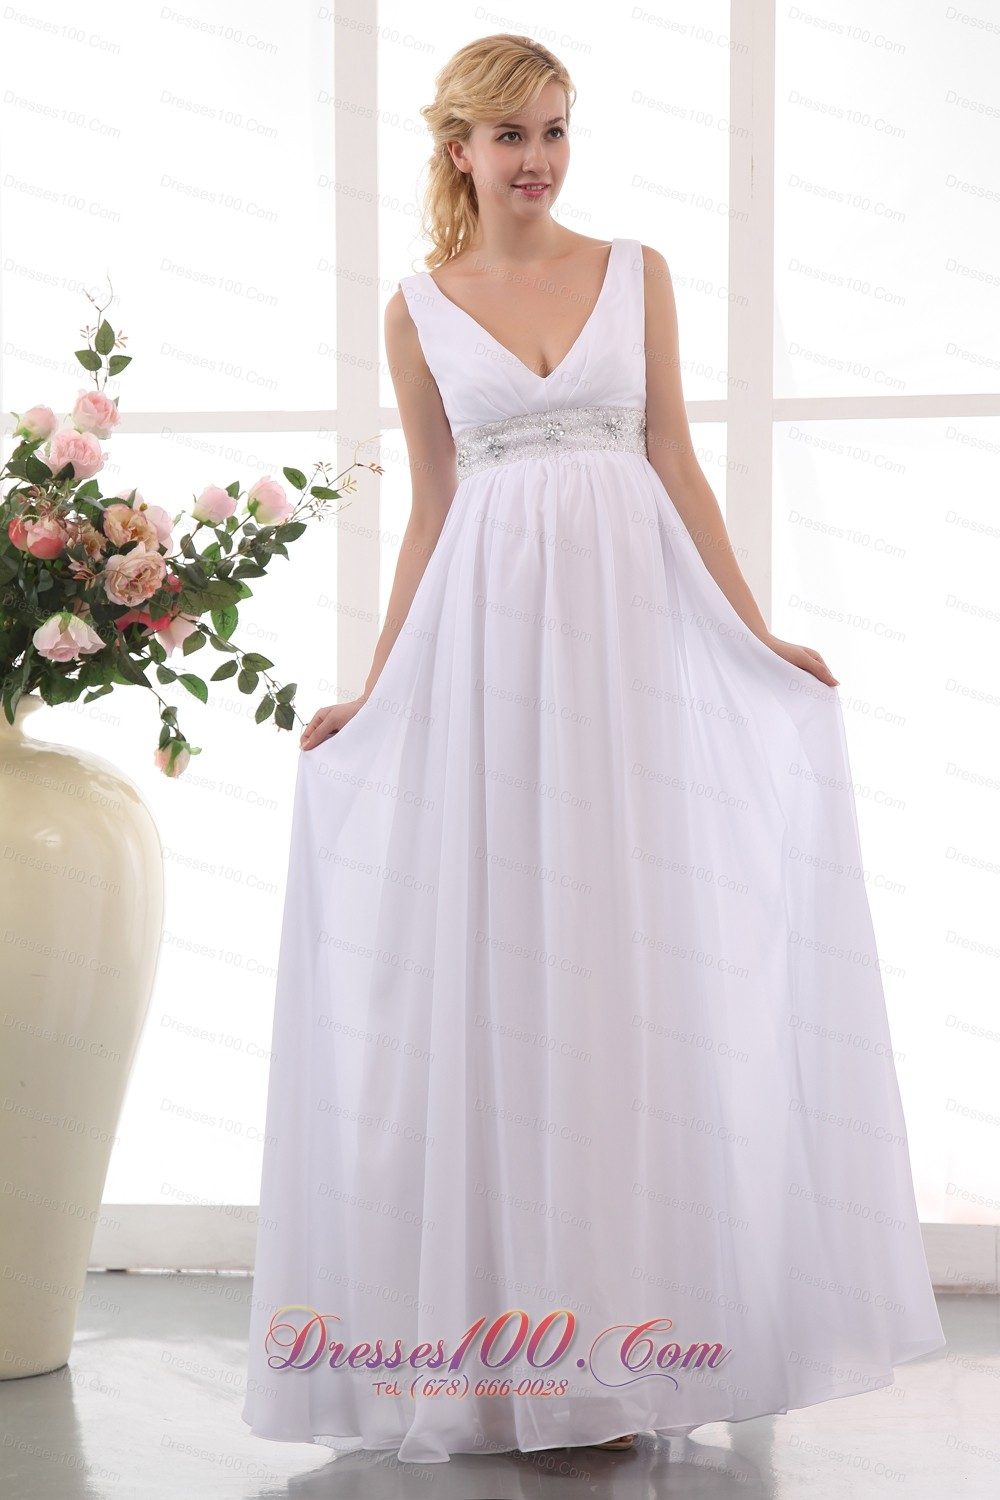 clearance maternity wedding dresses clearance wedding dresses Clearance Maternity Wedding Dresses 92